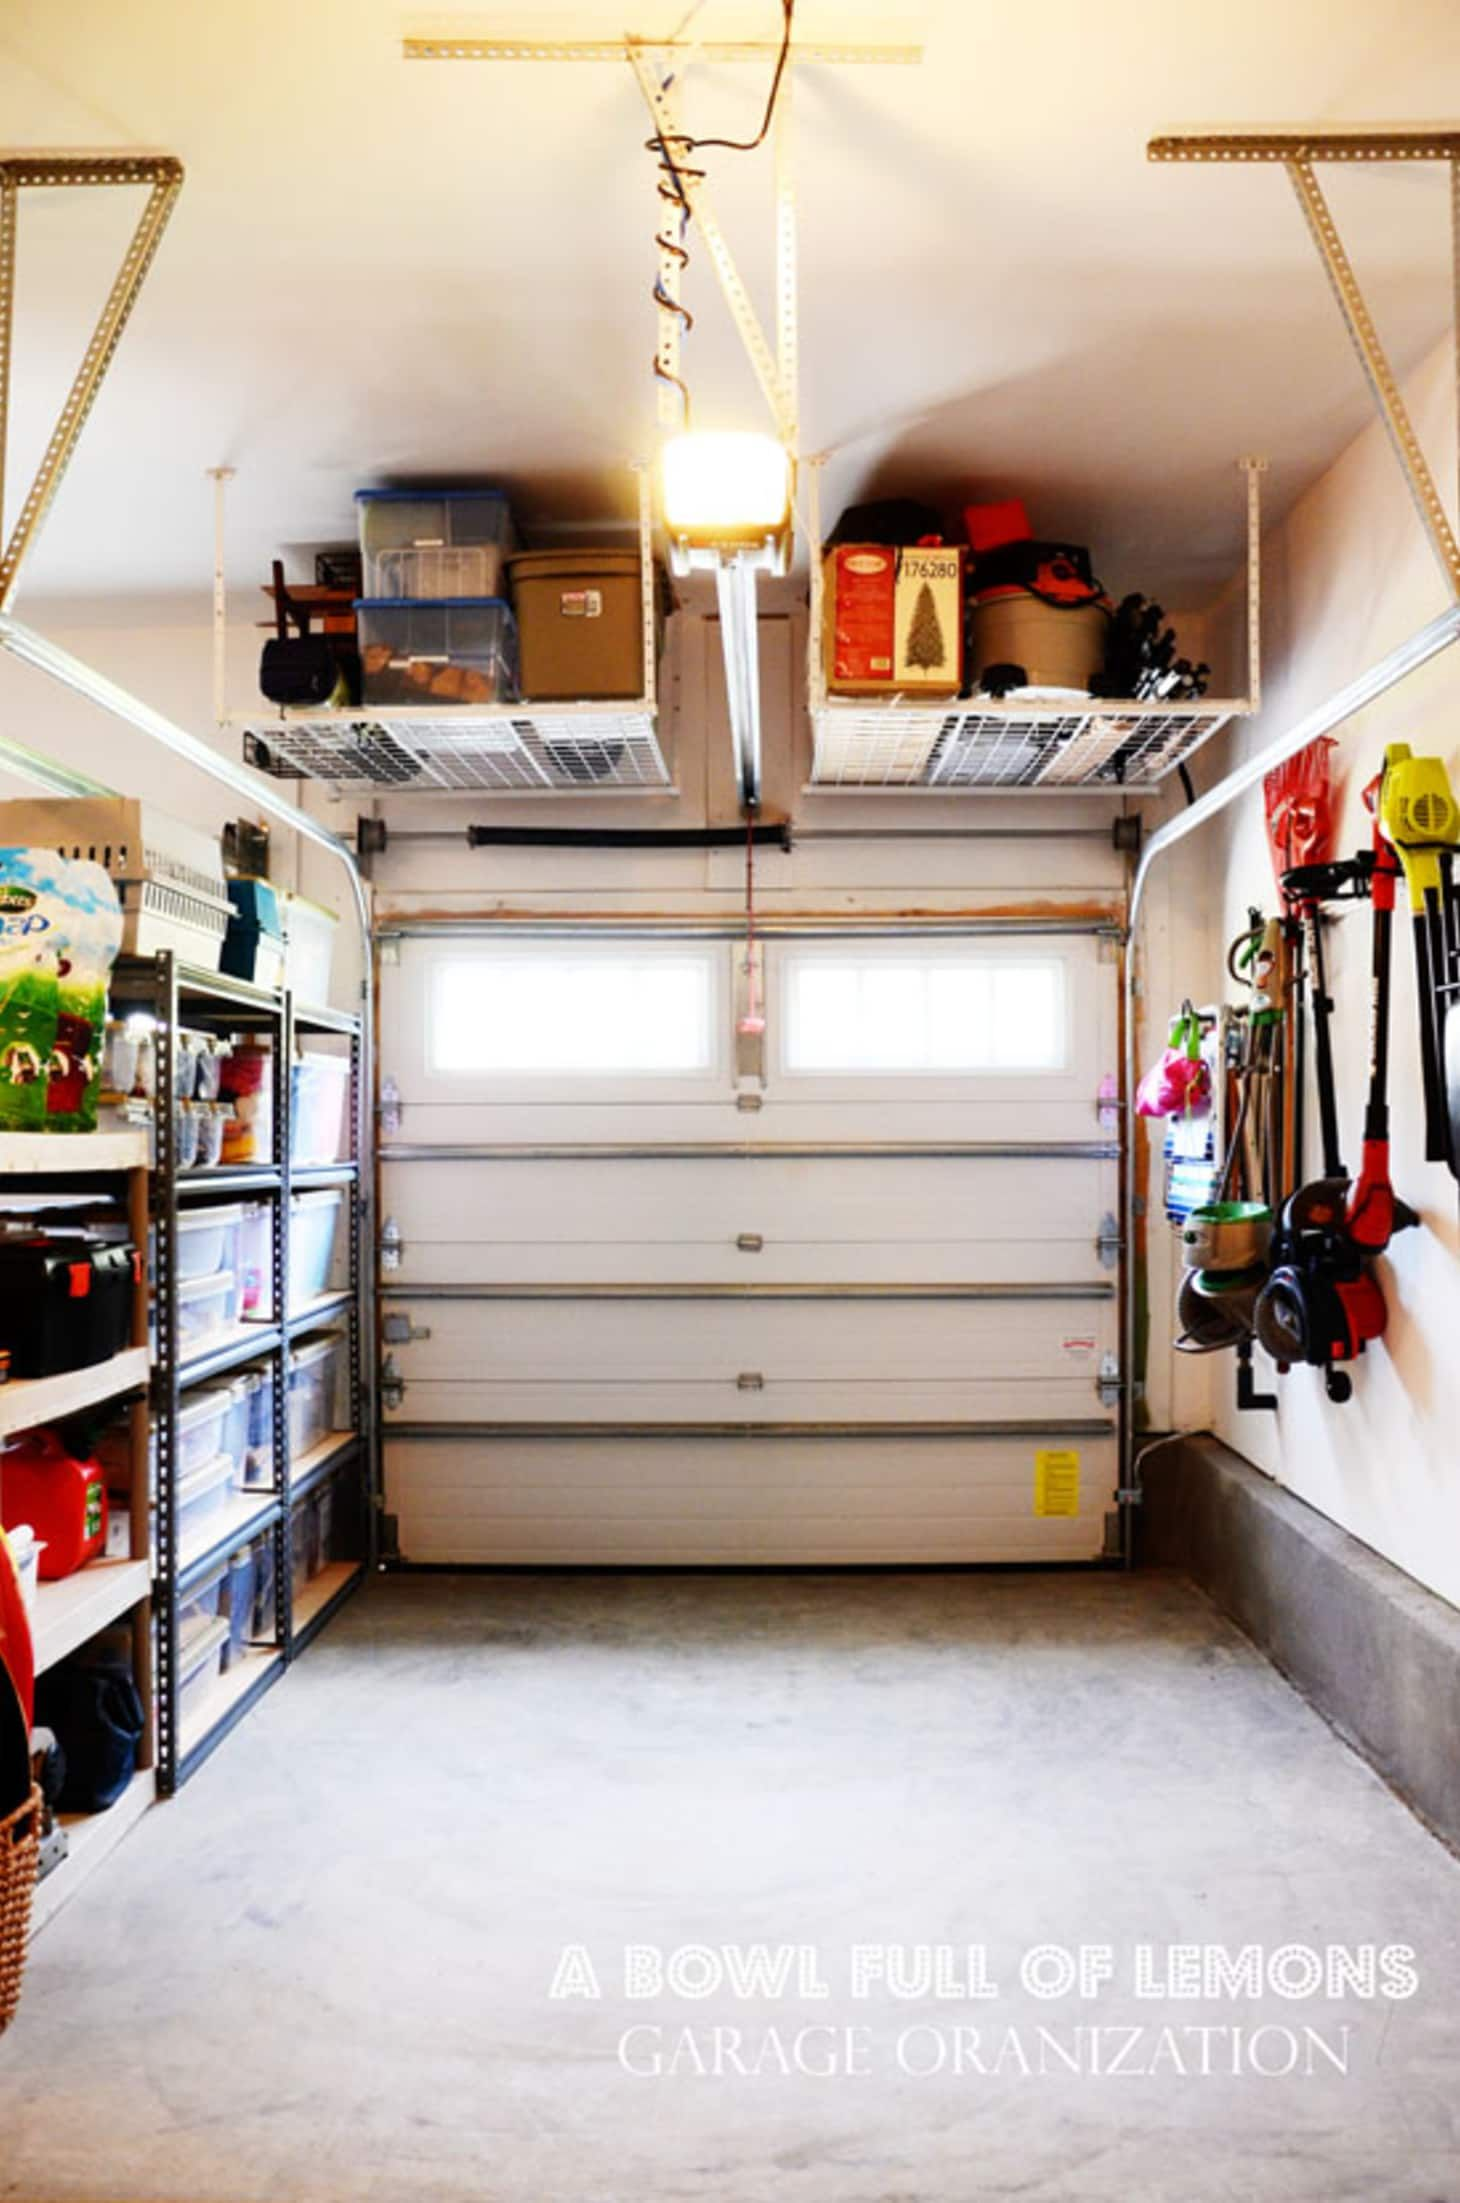 20 clever ideas for a super organized garage garage on clever garage organization ideas id=33197